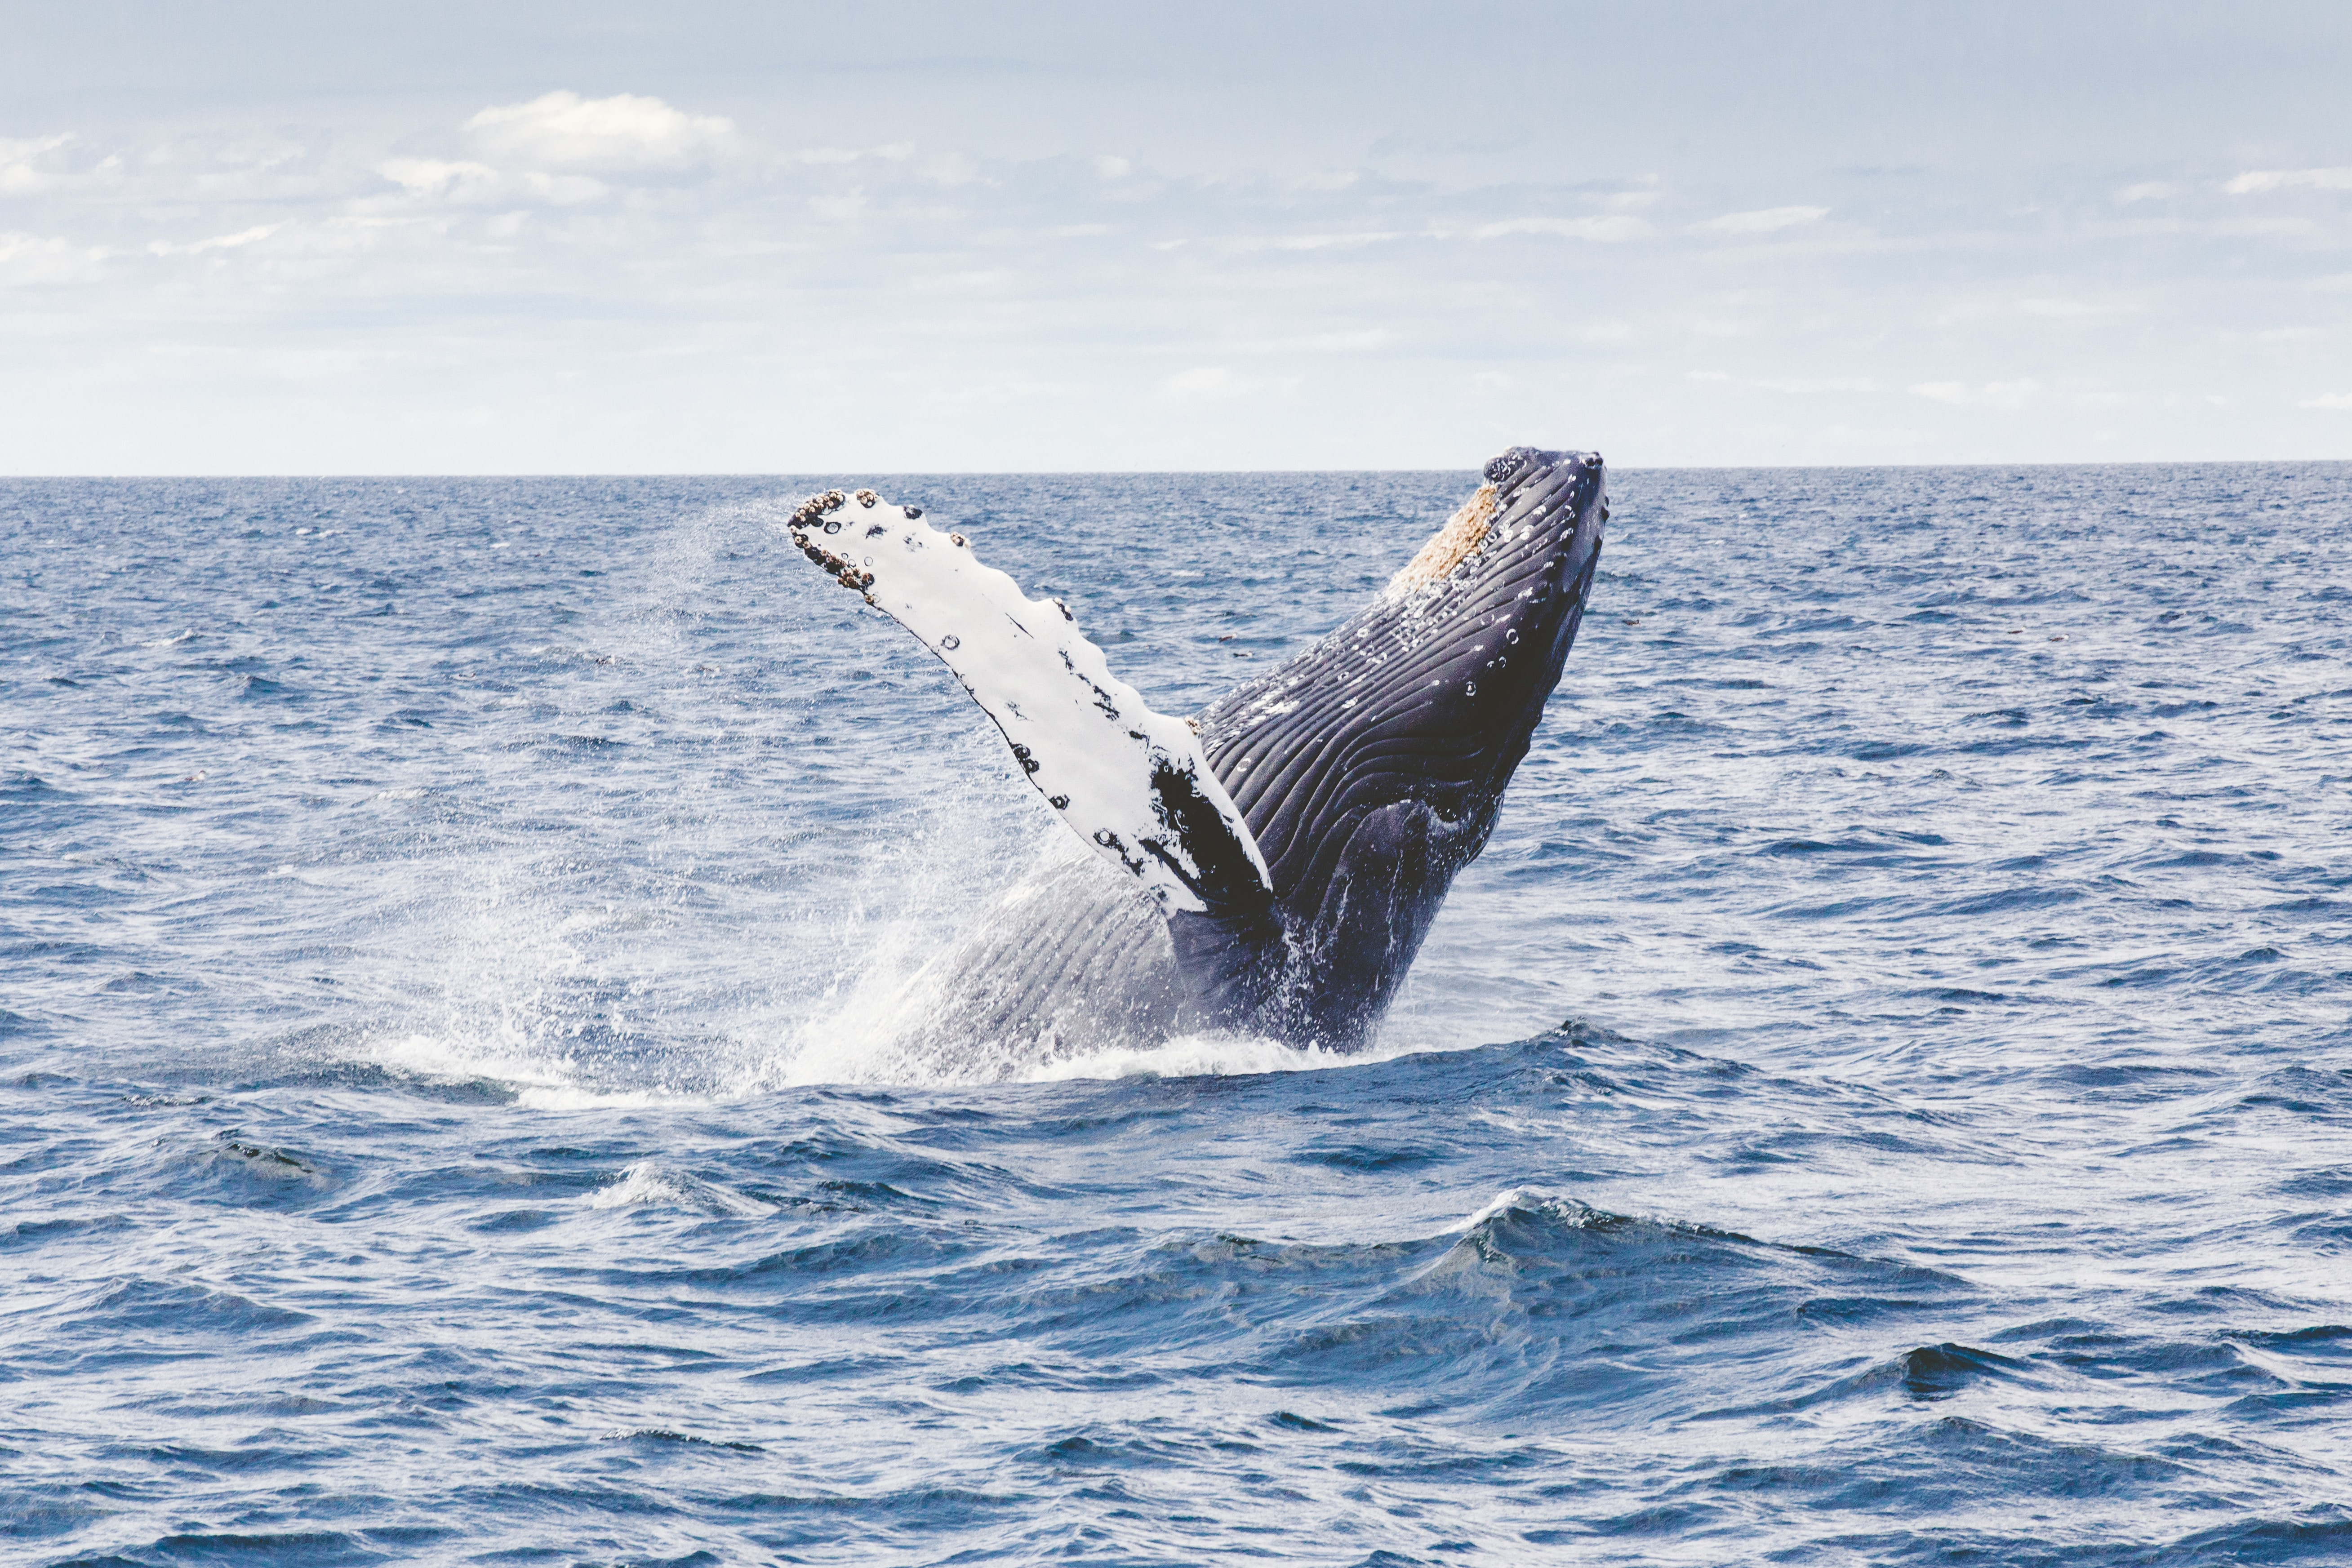 Grey Whale Breaching the Surface of the Ocean